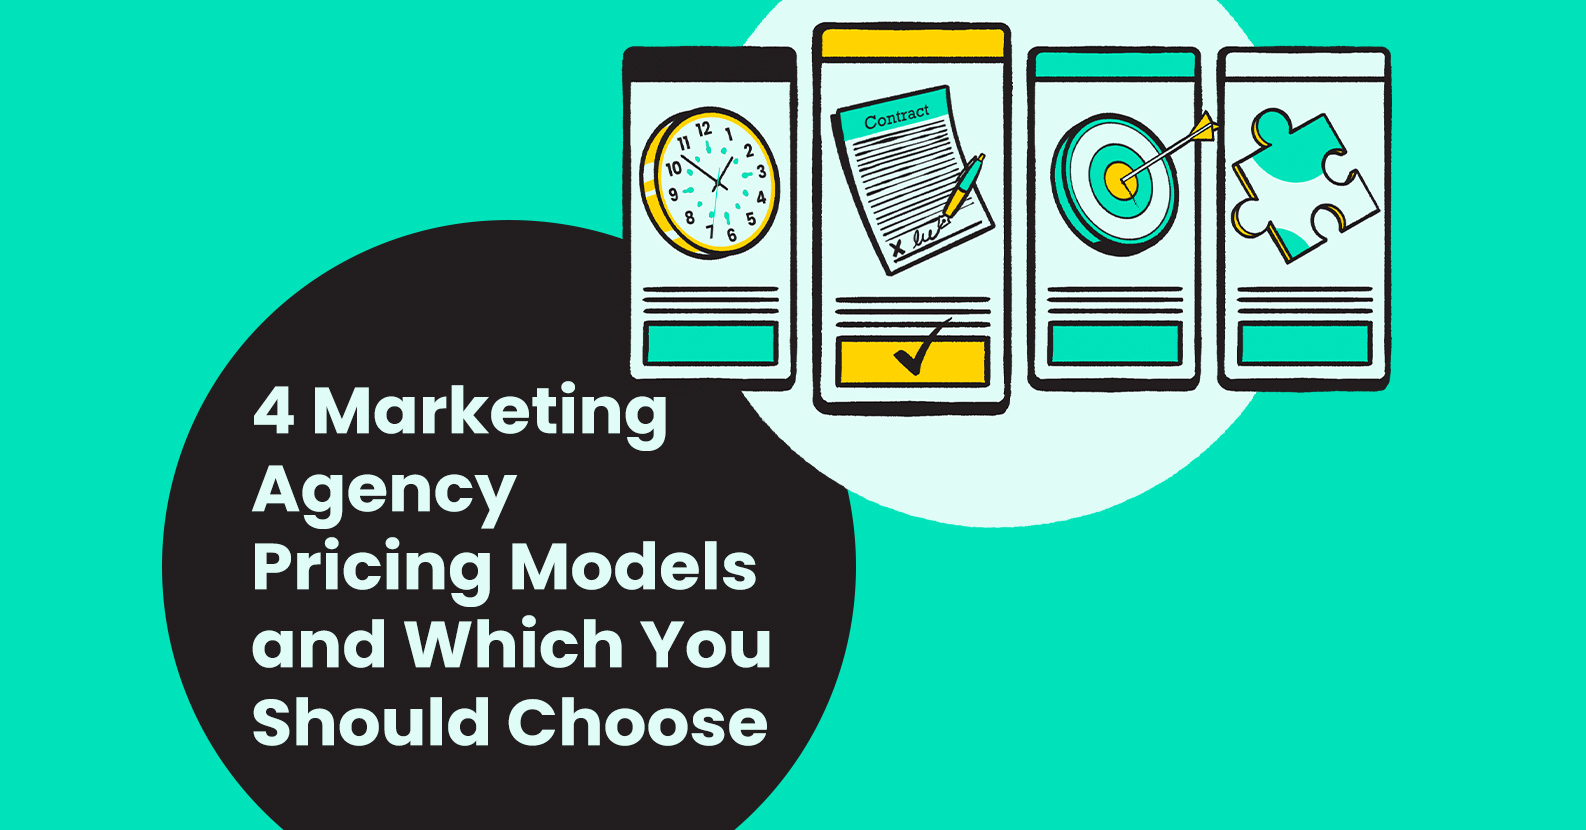 4 Marketing Agency Pricing Models and Which You Should Choose